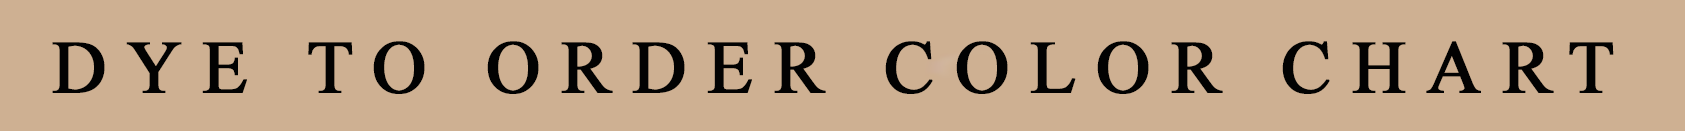 dye-to-order-banner.png